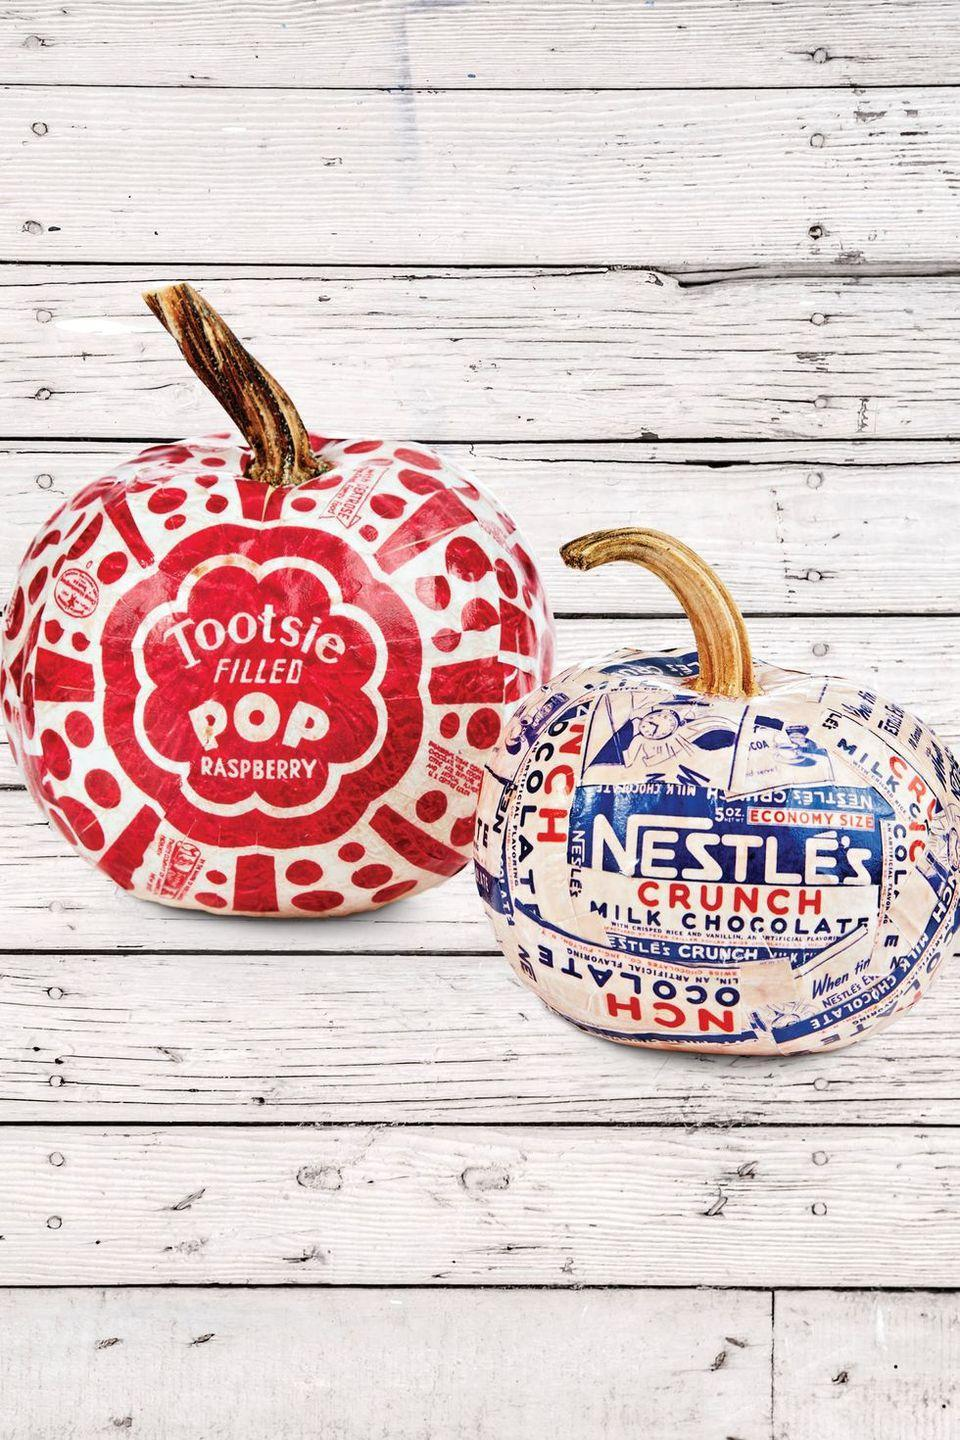 "<p>Print out some cool vintage candy wrappers, cut paper into strips, and then use Mod Podge to decorate your pumpkins this year. Opt for faux pumpkins so you can bring them out year after year.</p><p><a class=""link rapid-noclick-resp"" href=""https://www.amazon.com/Mod-Podge-CS11303-Waterbase-Sealer/dp/B0009ILH8C/?tag=syn-yahoo-20&ascsubtag=%5Bartid%7C2139.g.34440360%5Bsrc%7Cyahoo-us"" rel=""nofollow noopener"" target=""_blank"" data-ylk=""slk:SHOP MOD PODGE"">SHOP MOD PODGE</a></p>"